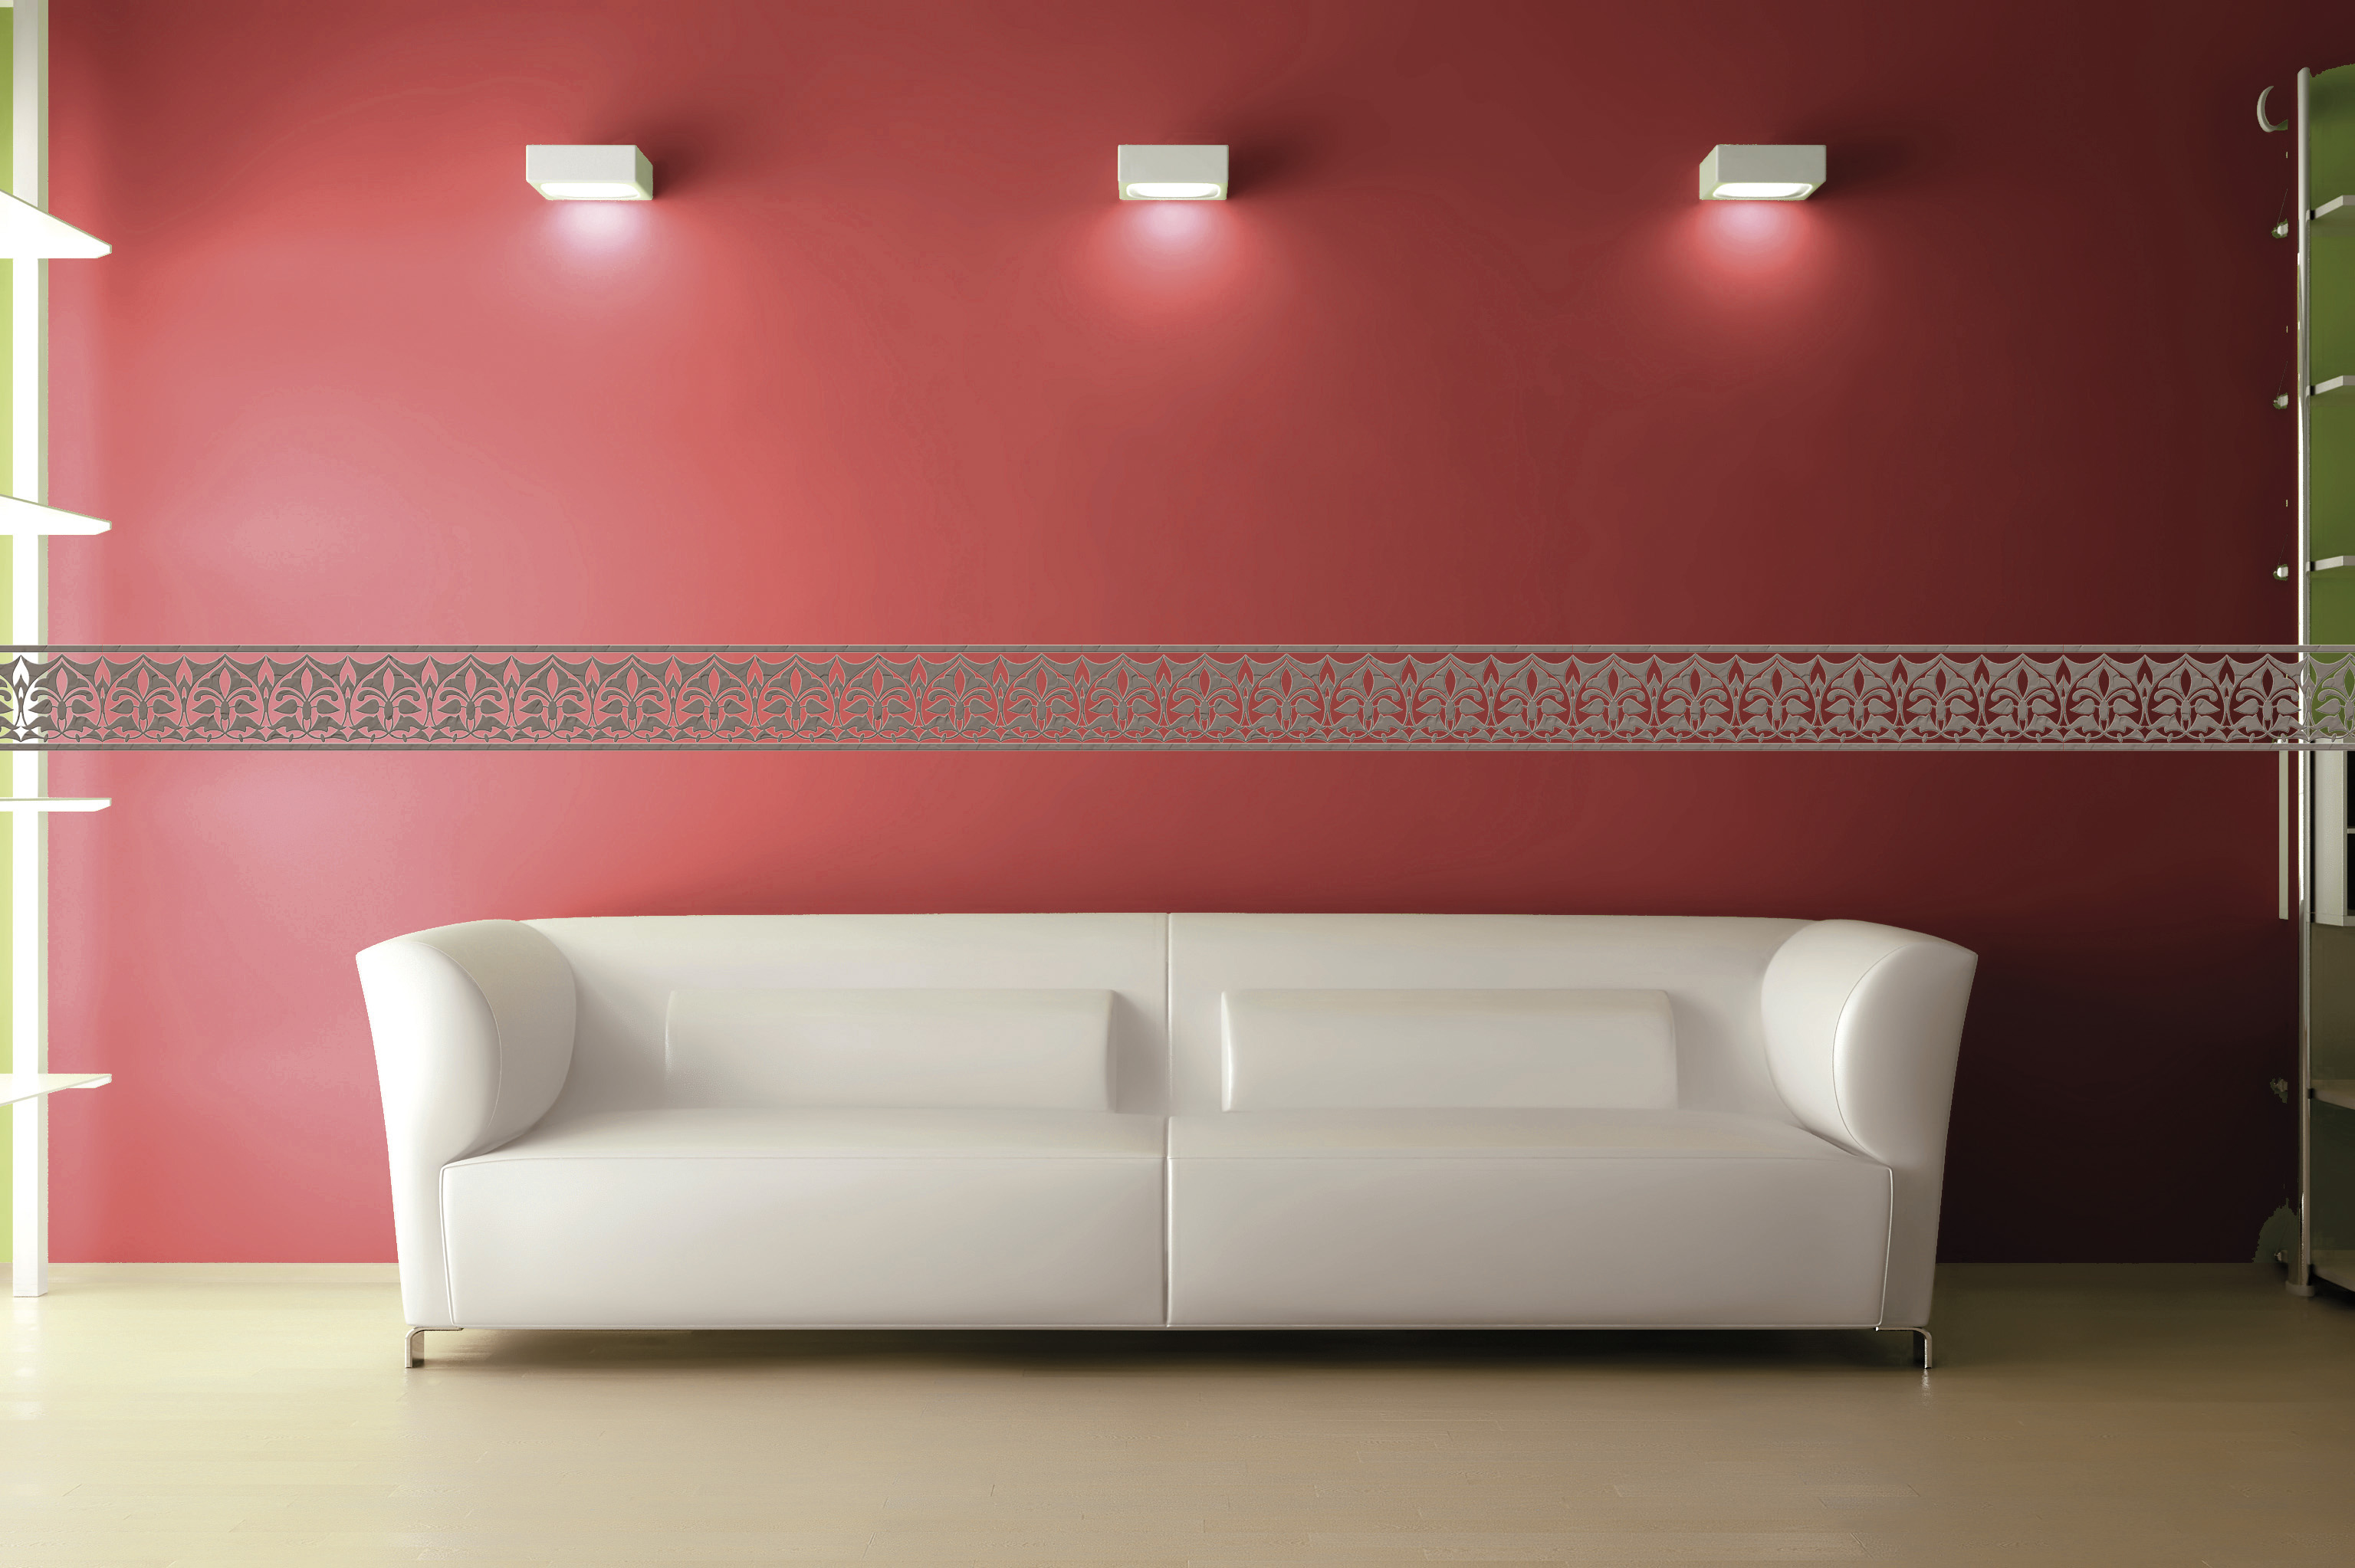 sticker mural fresque marocaine clairefontaine mille et une feuilles. Black Bedroom Furniture Sets. Home Design Ideas